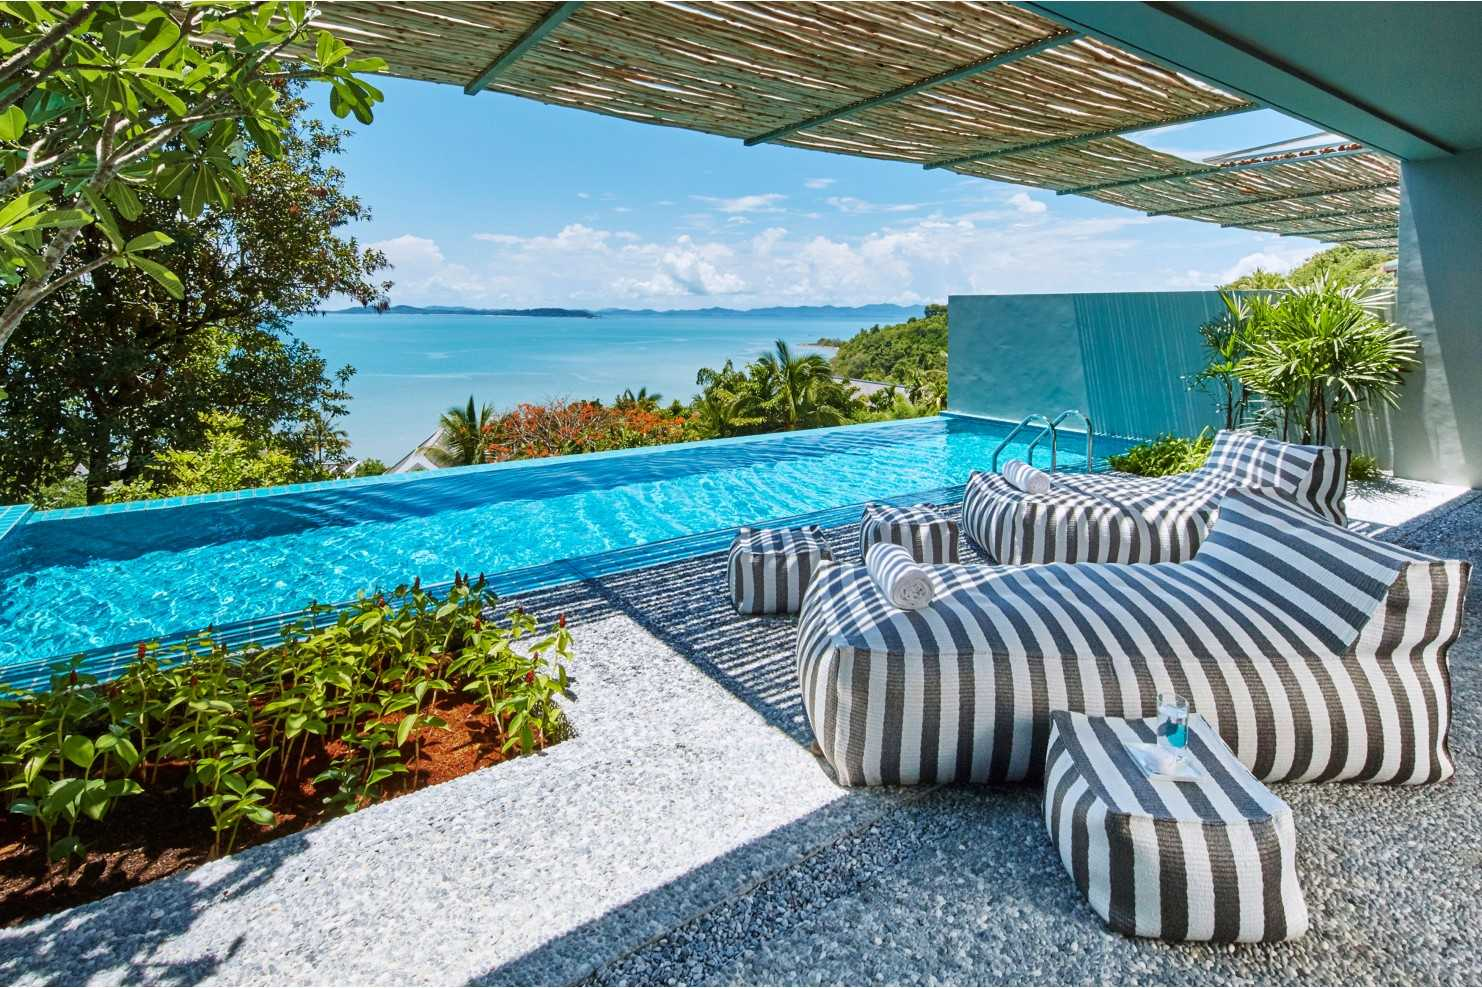 Affordable 5-star Hotels in Phuket